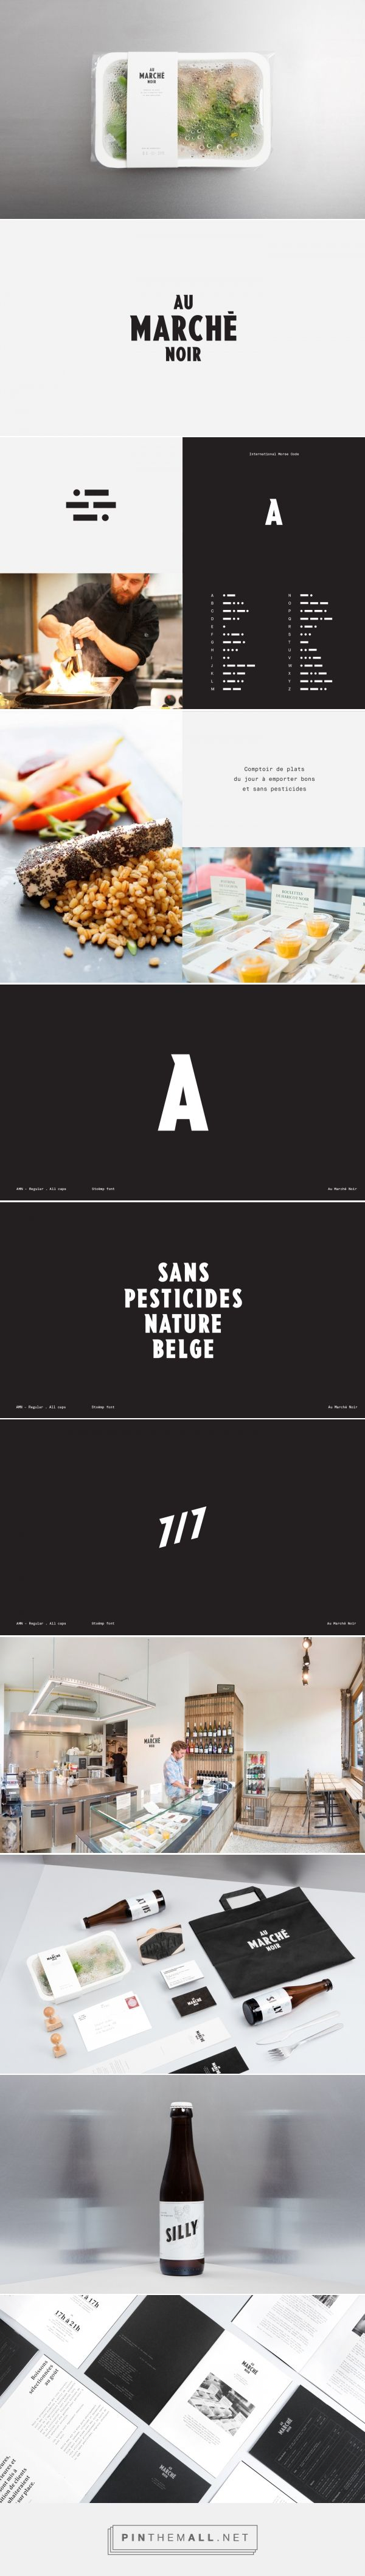 100 best BRAND IDENTITY images by Damien POEYMIROO on Pinterest